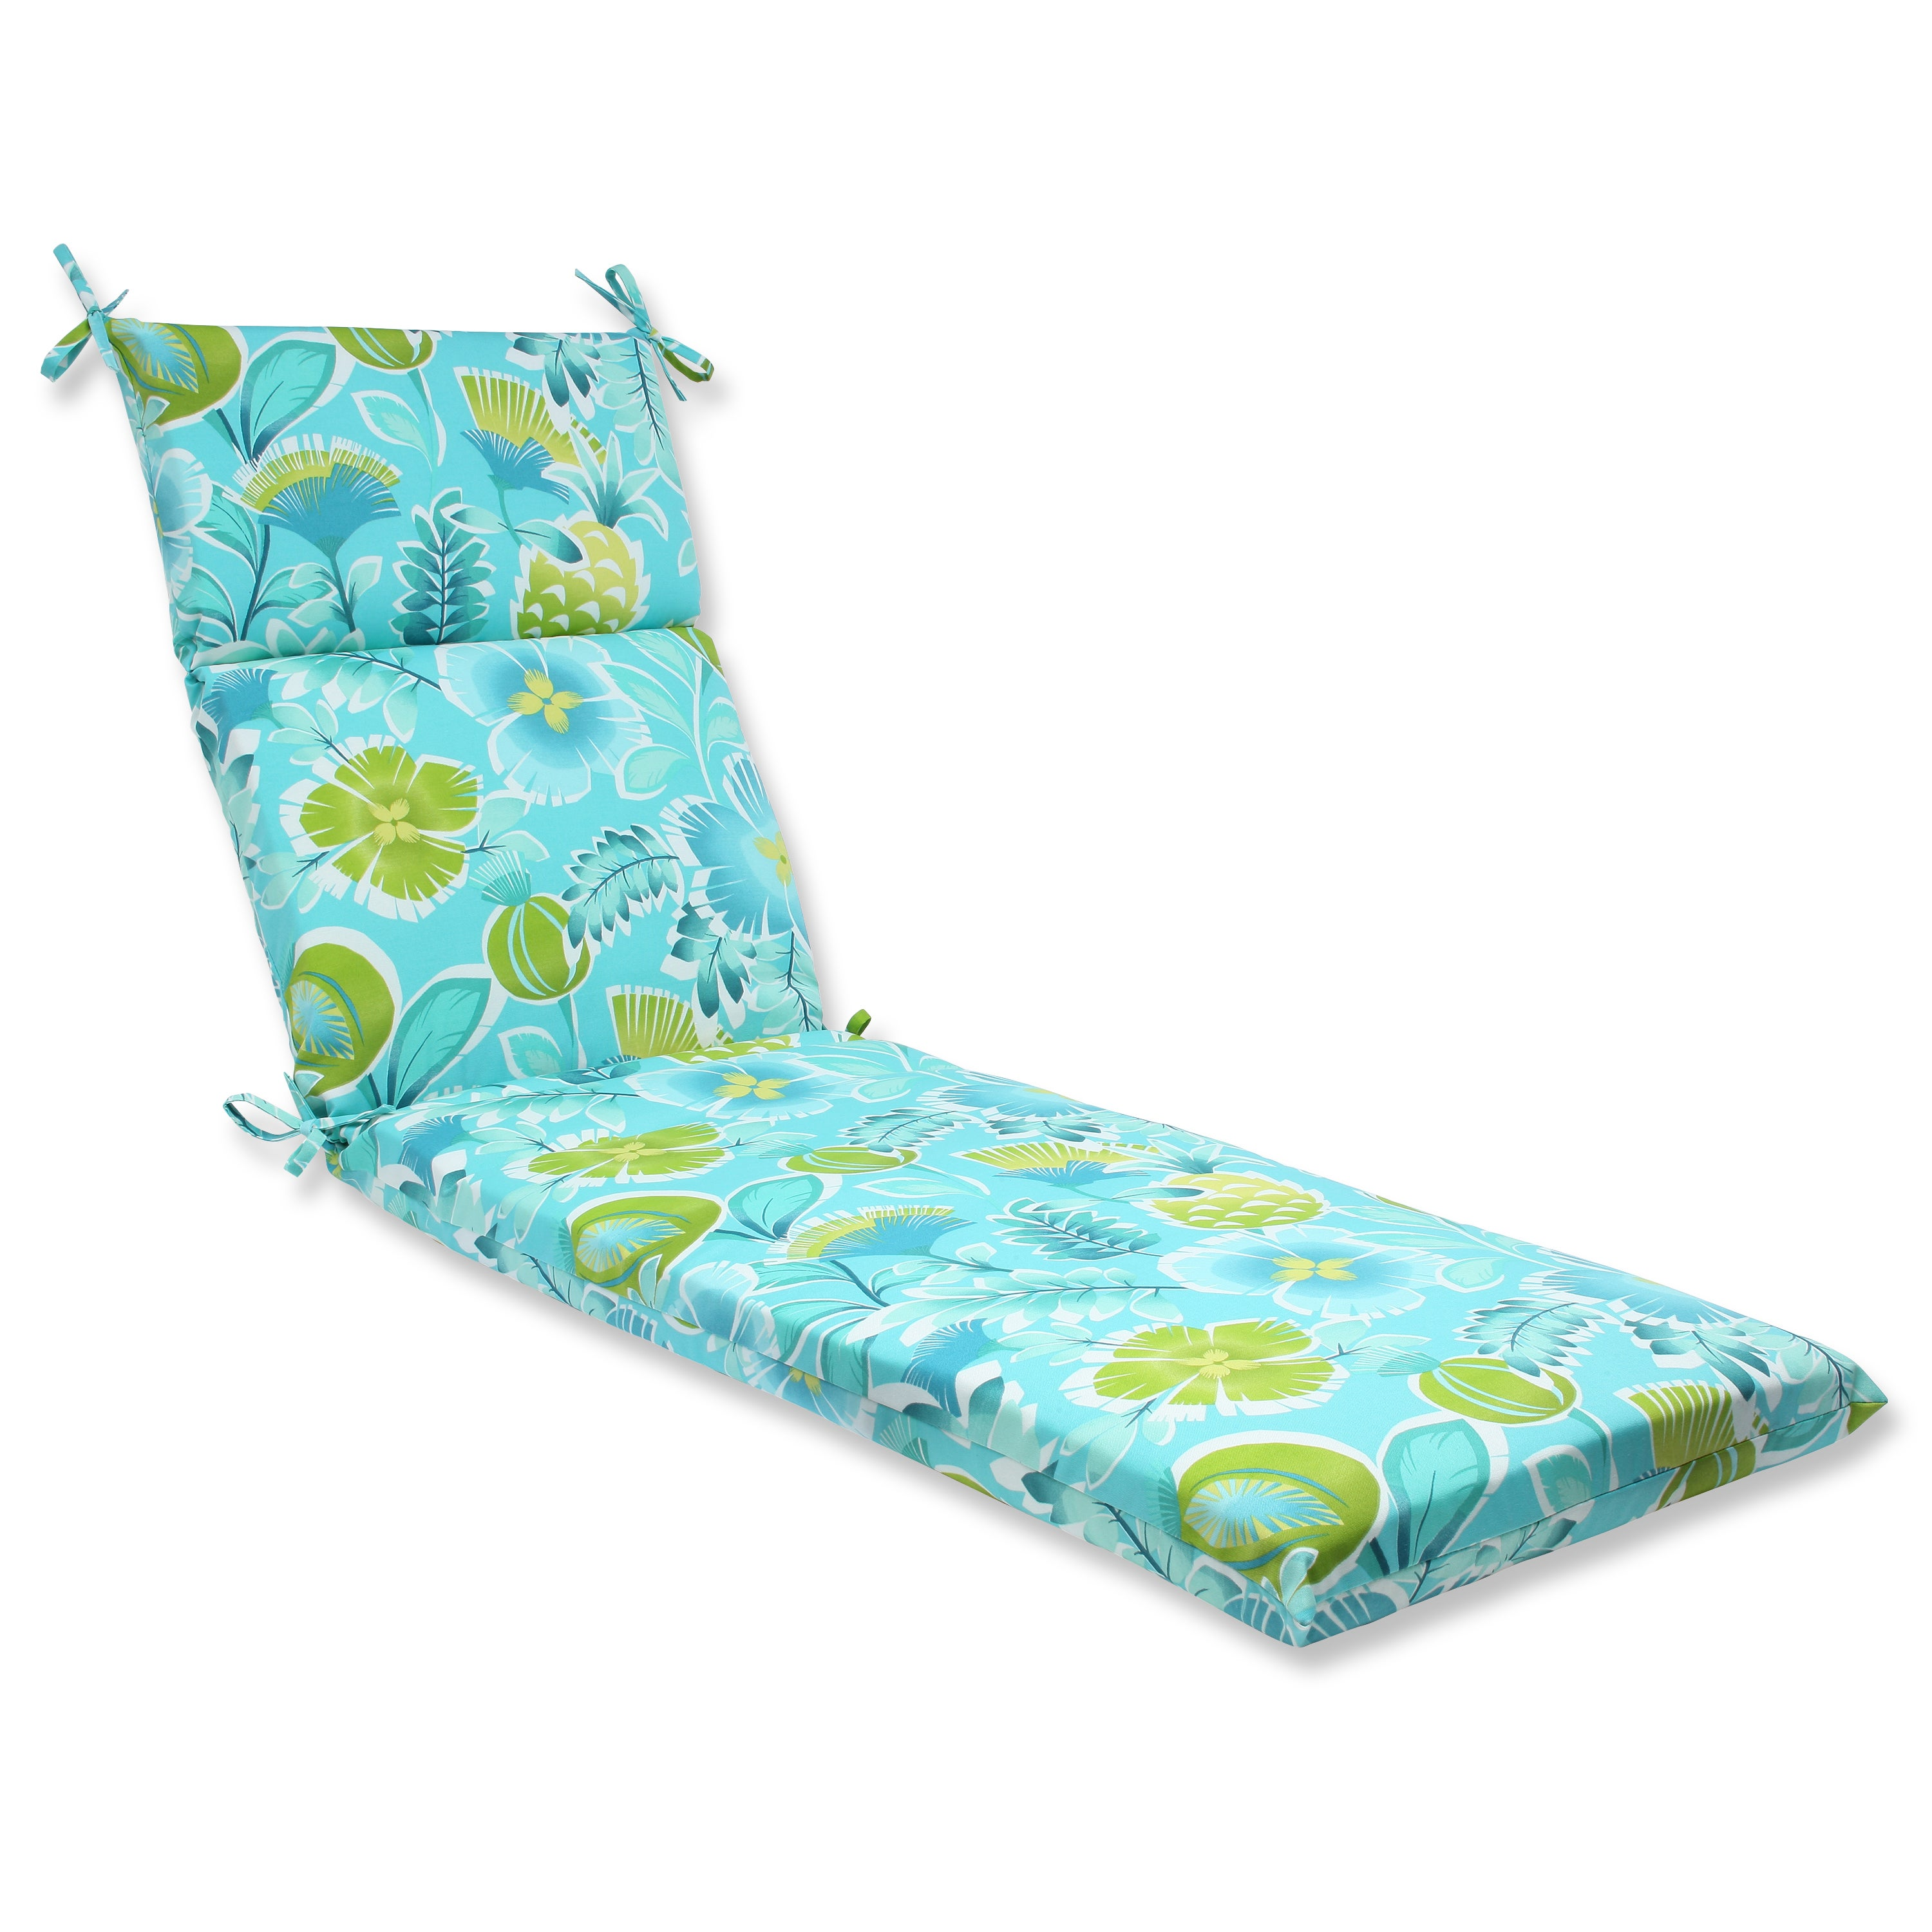 Pillow Perfect Outdoor Calypso Turquoise Chaise Lounge